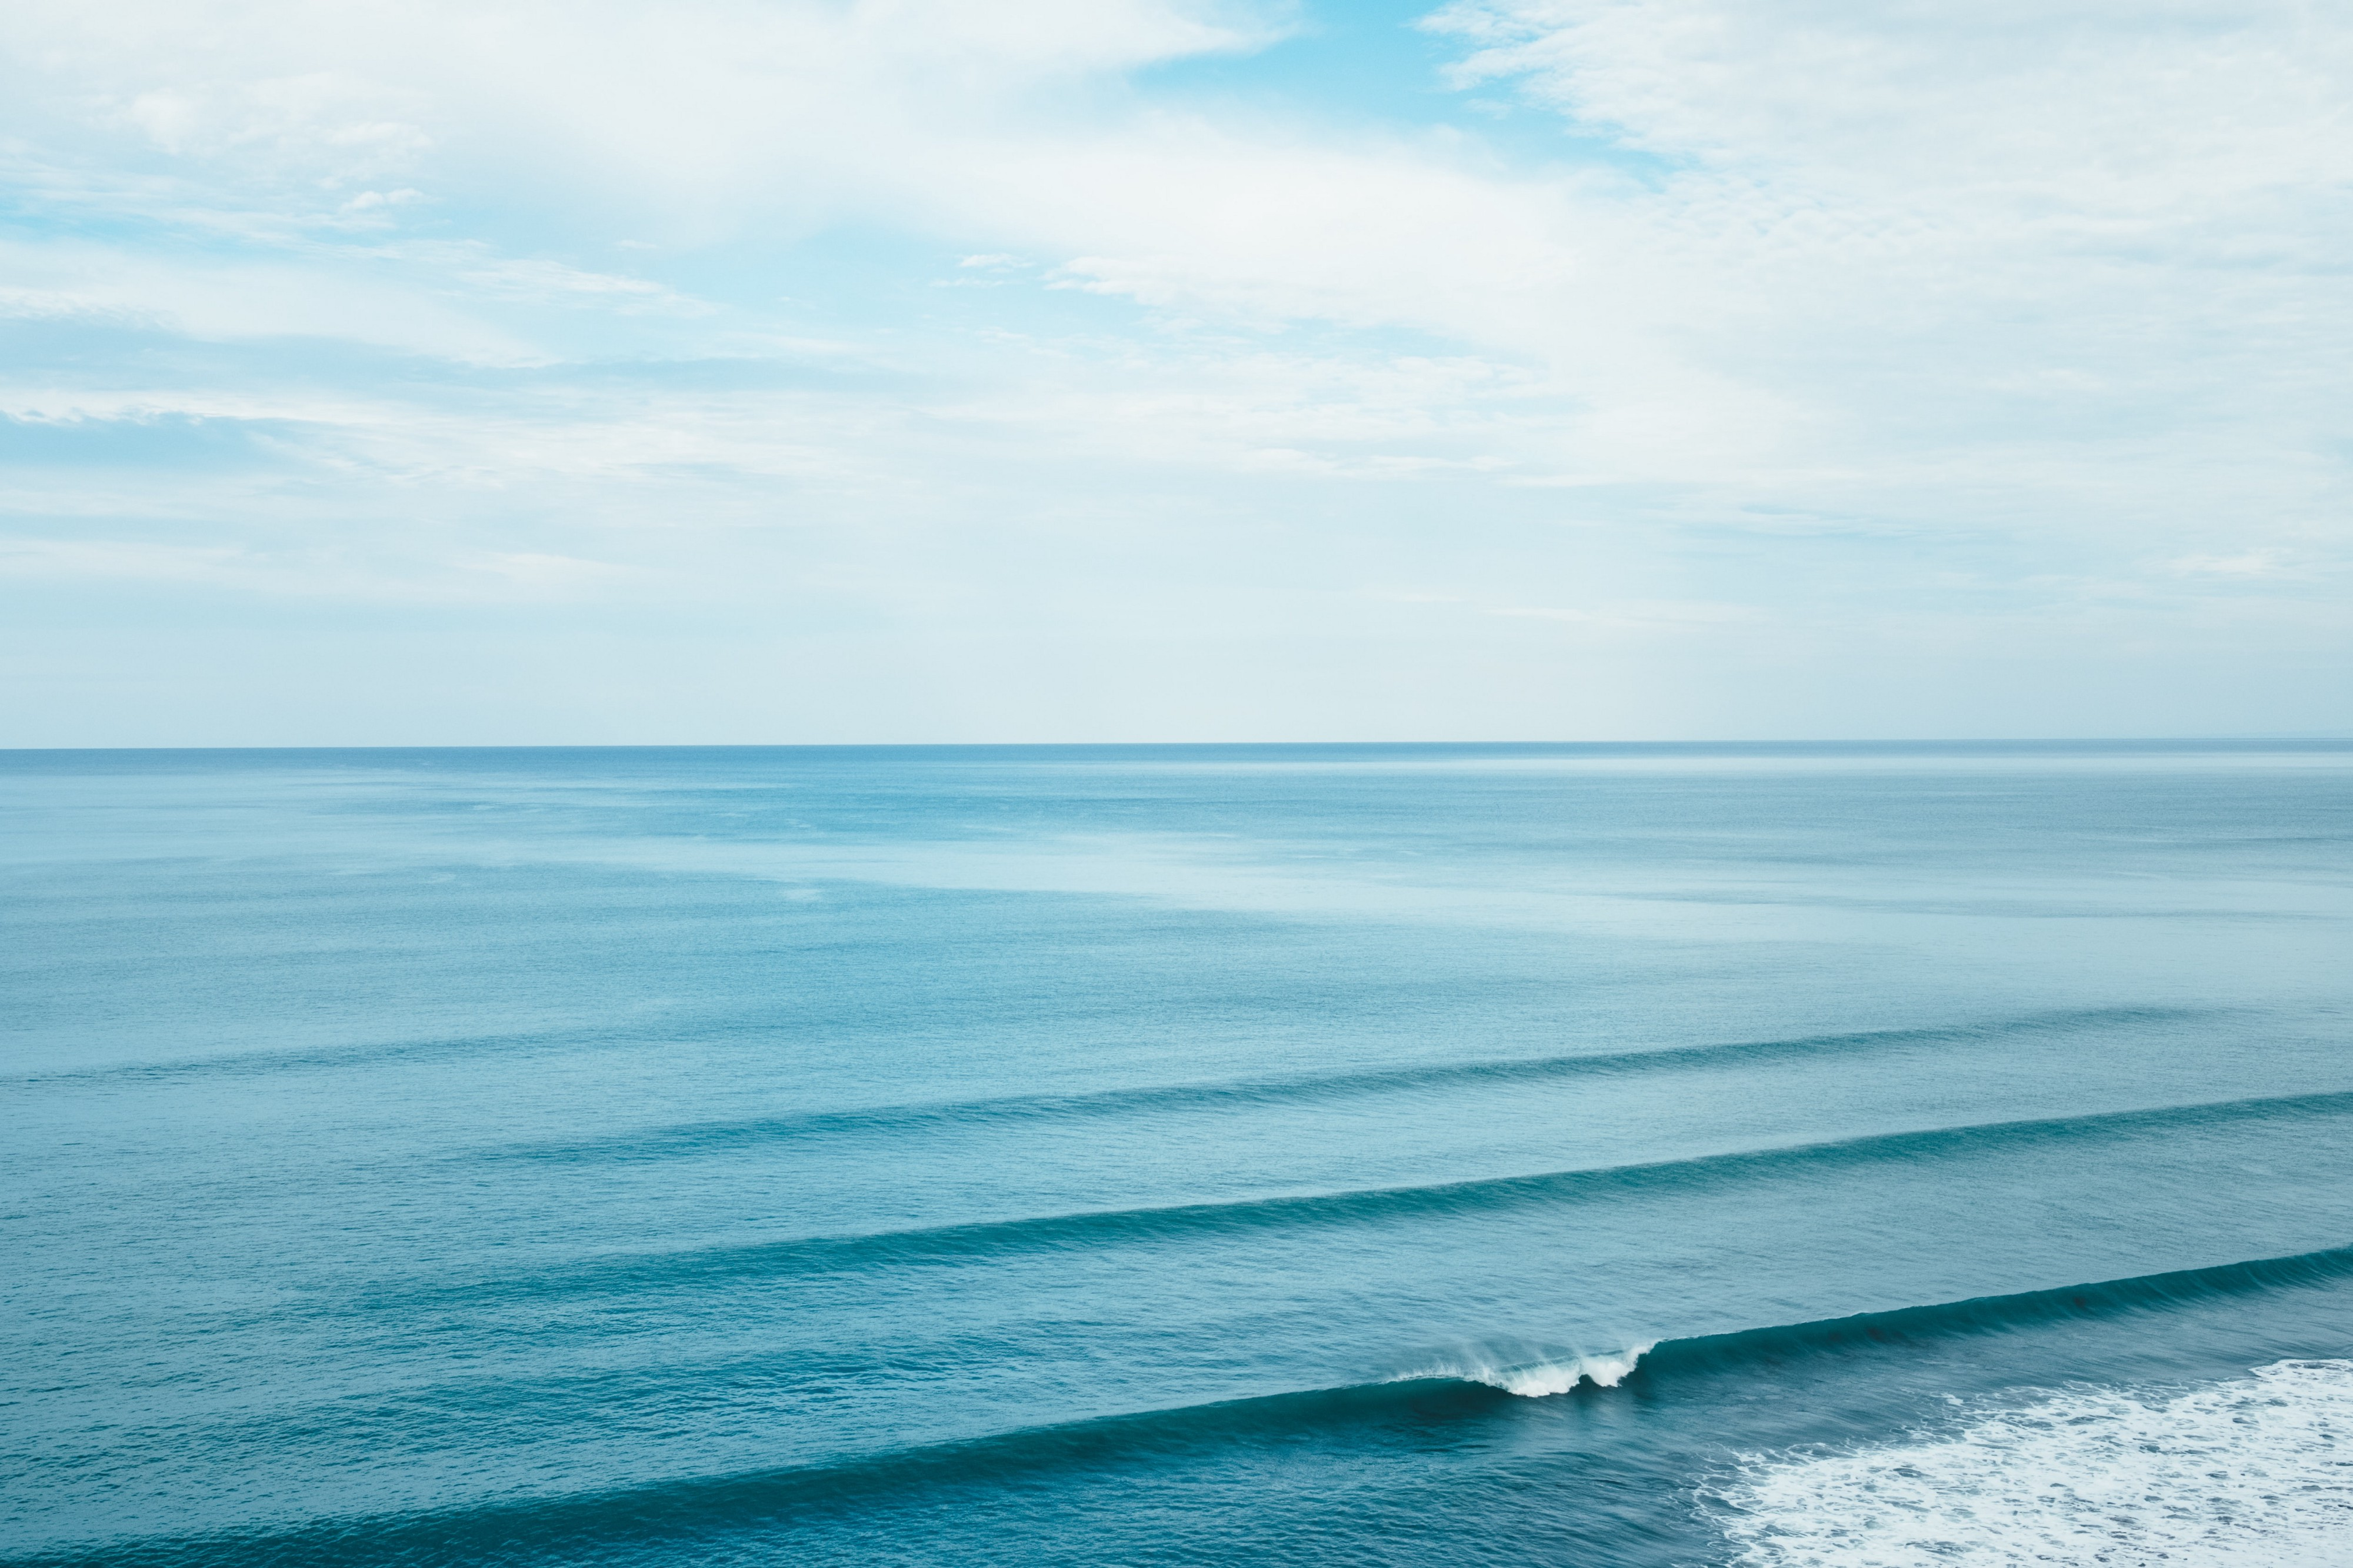 Ocean with calm waves